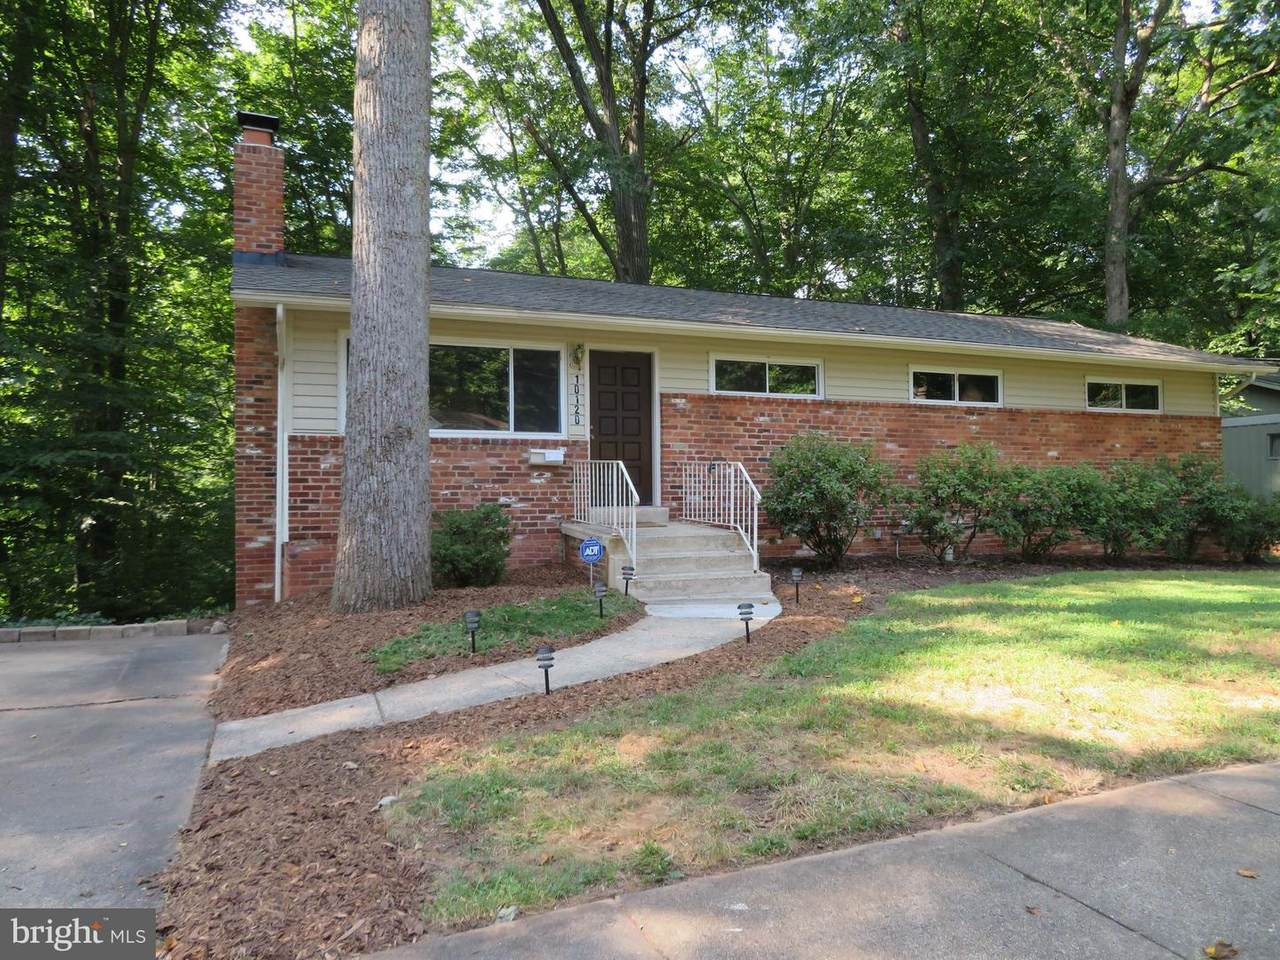 10120 Spring Lake Terrace - Photo 1